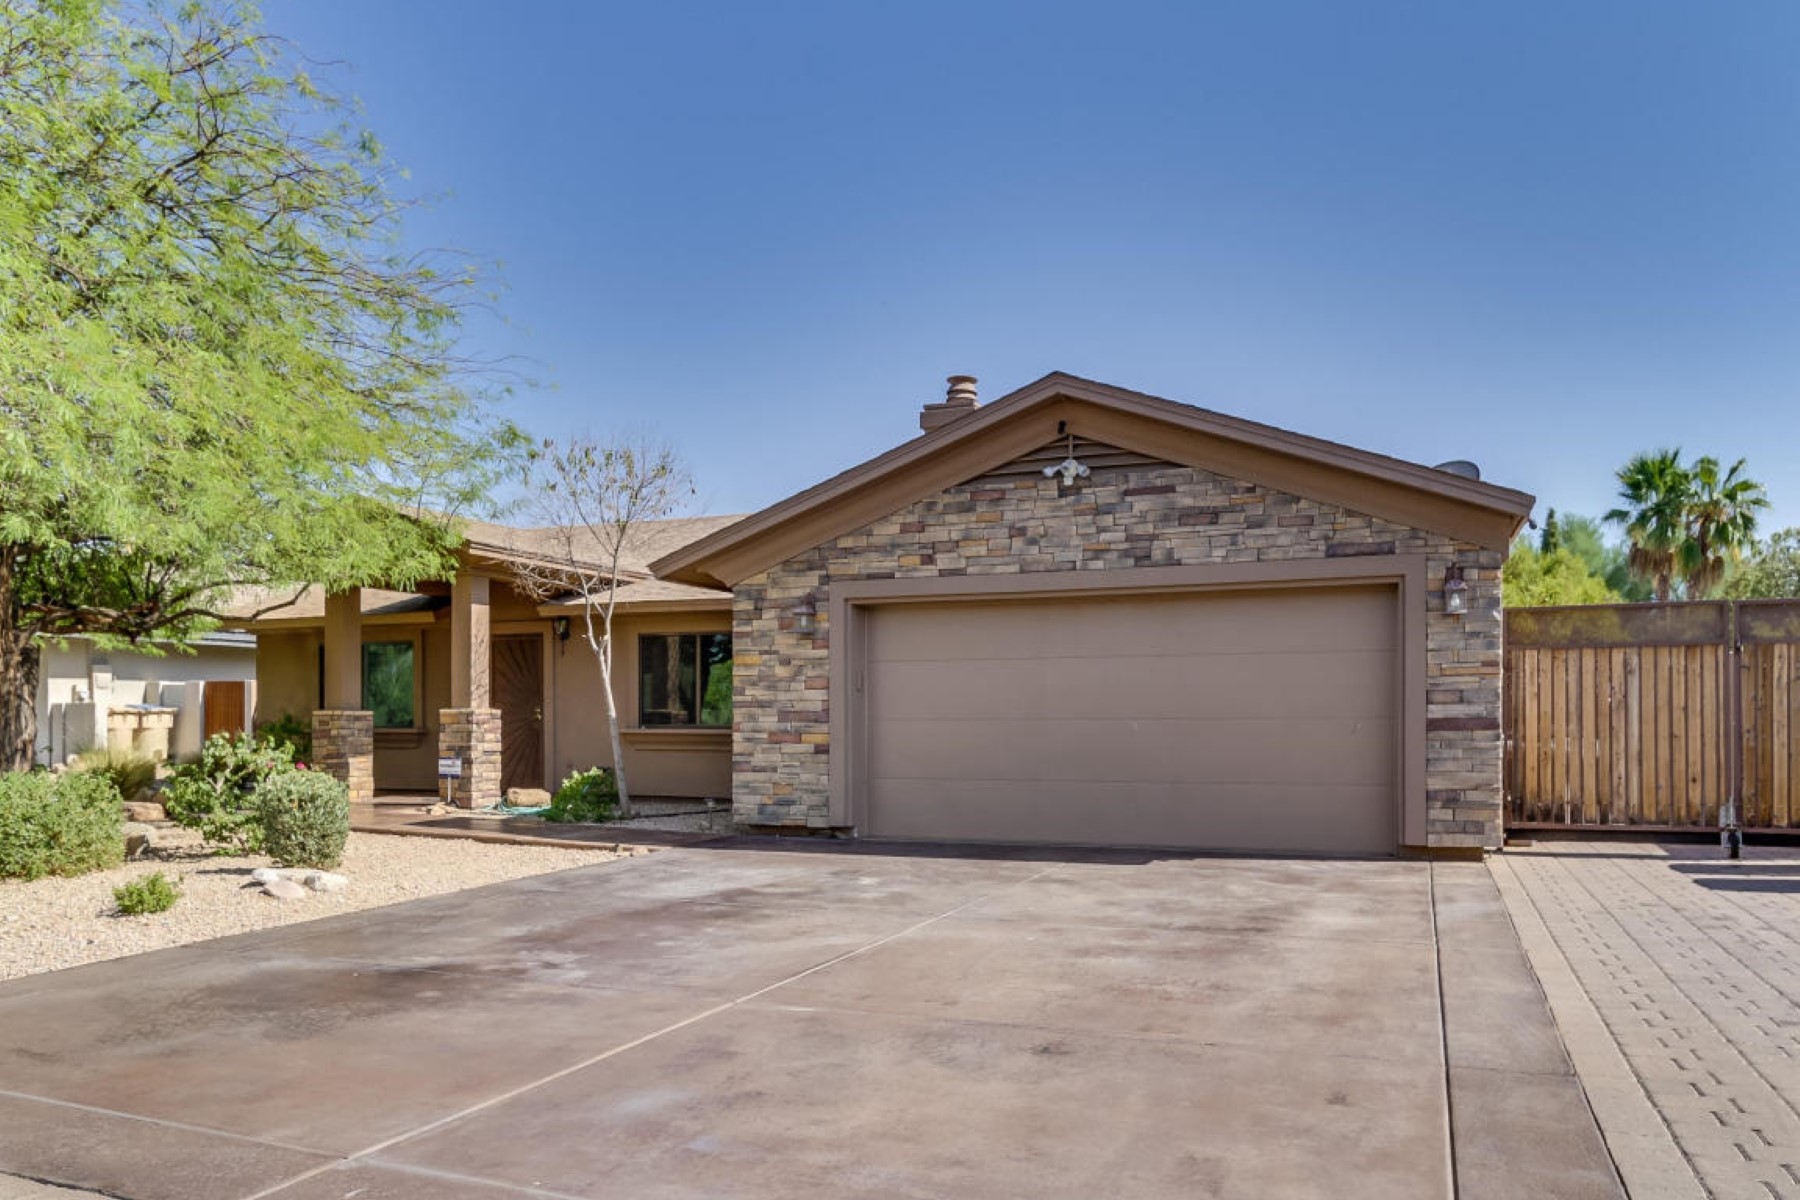 Single Family Home for Sale at Upgraded property tucked in a quiet enclave in Fountain Hills 17511 E San Marcus Dr Fountain Hills, Arizona, 85268 United States